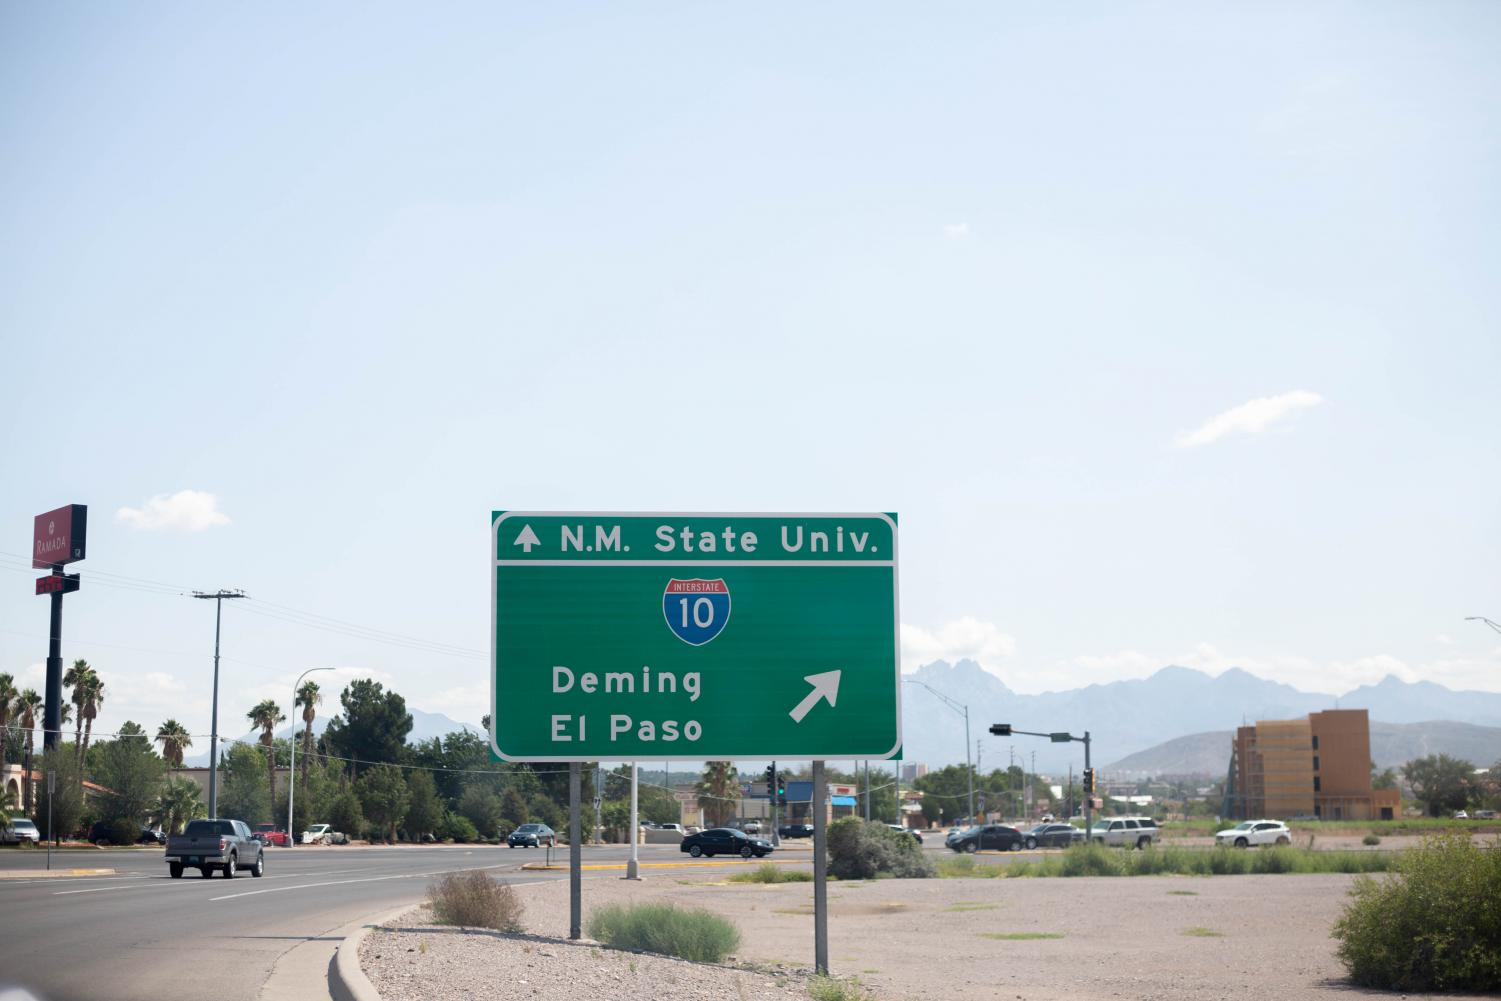 Many NMSU students commute from El Paso, Texas, 43 miles away.